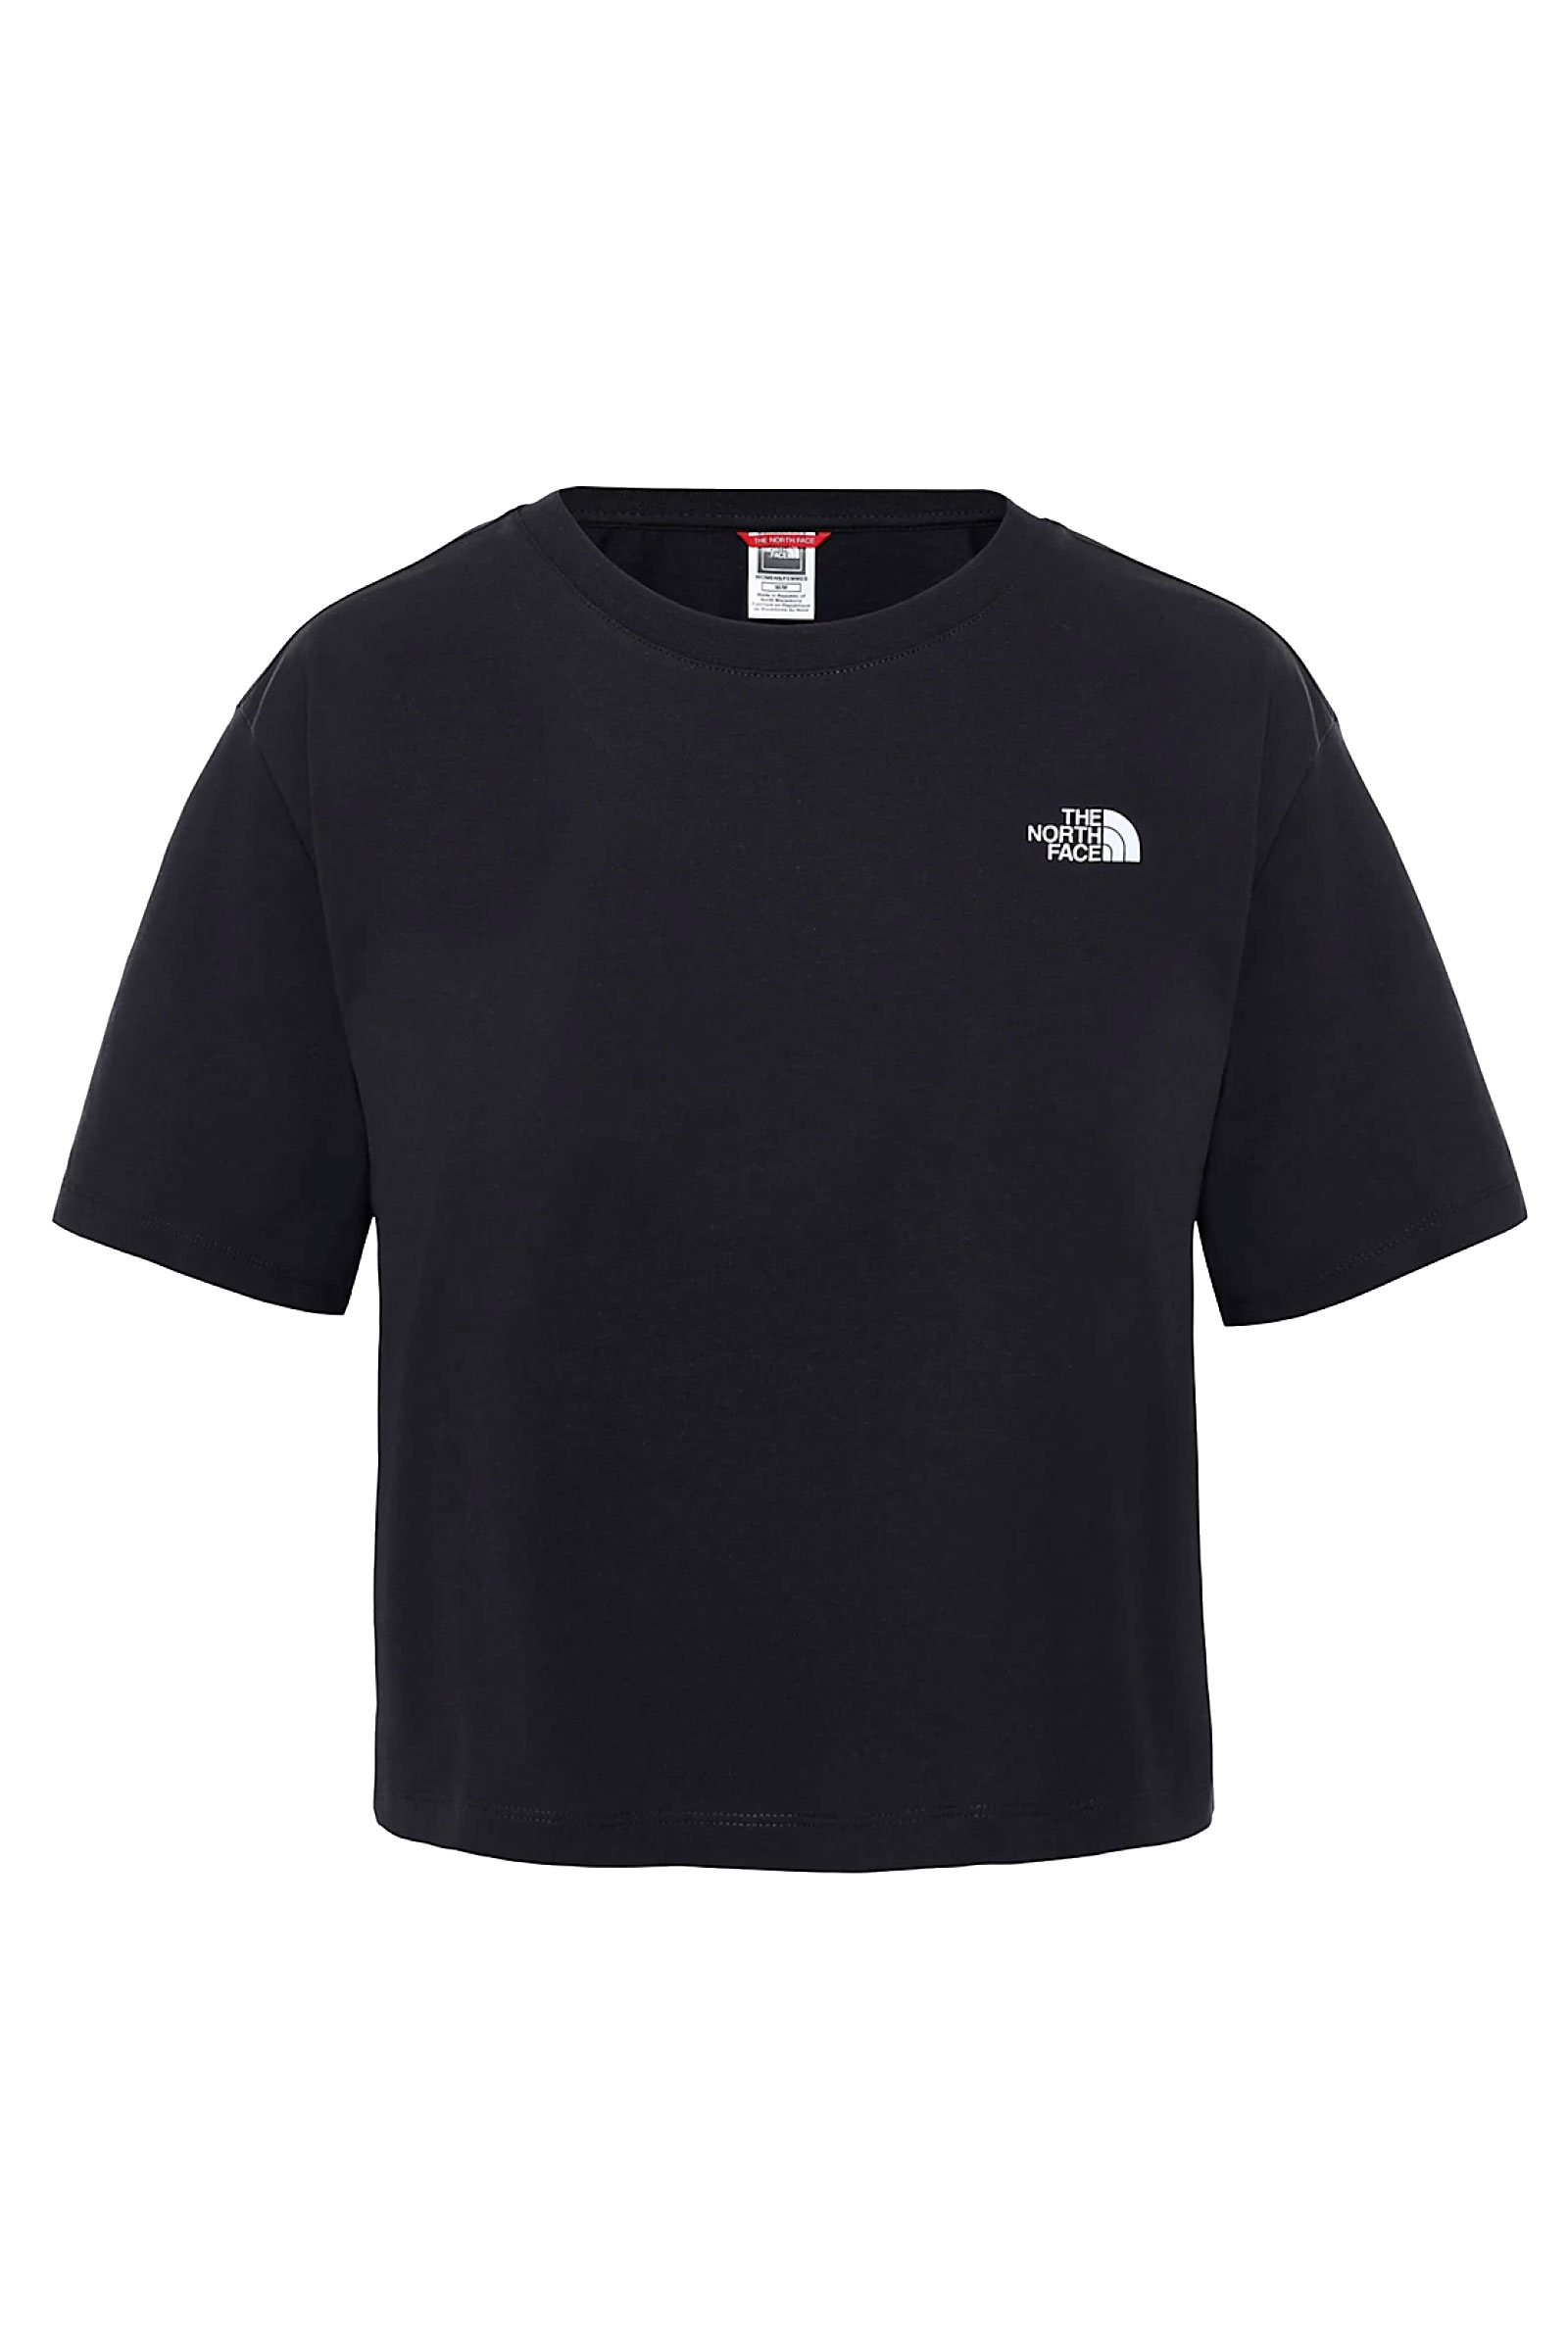 THE NORTH FACE | T-Shirt | NF0A4SYCJK31